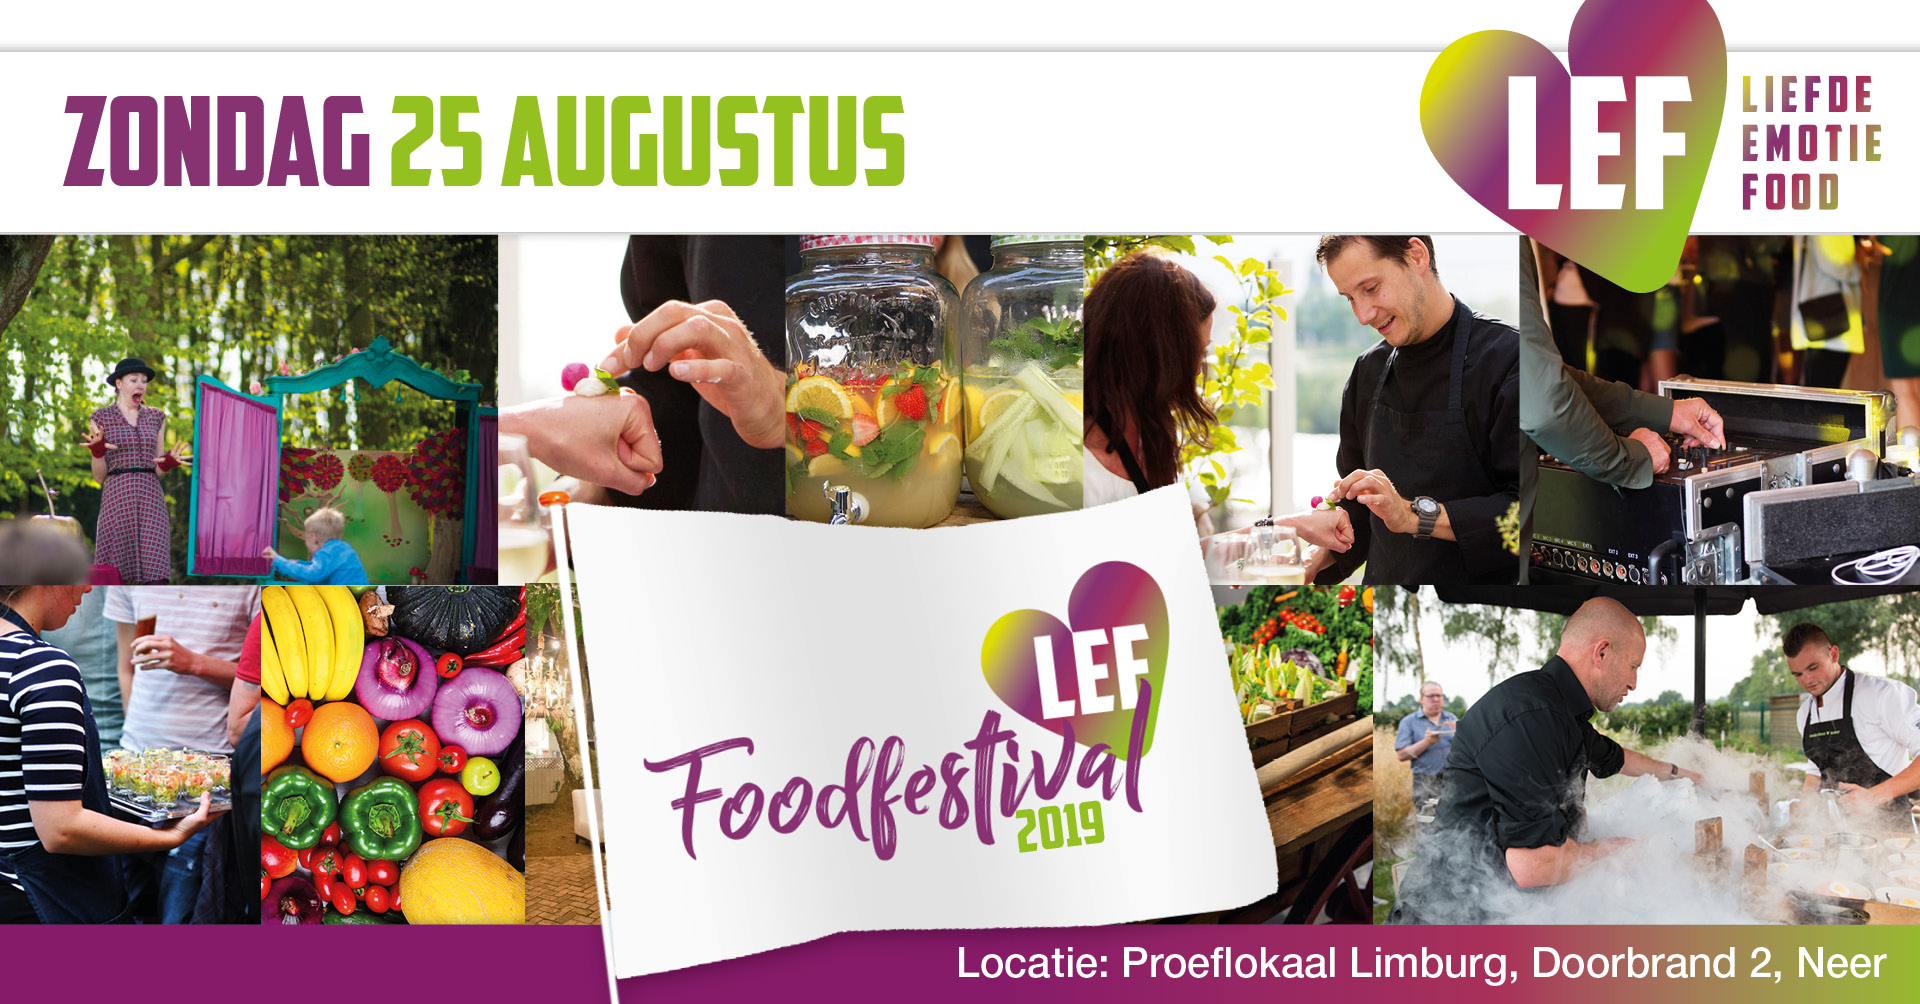 LEF Foodfestival in Neer, Limburg